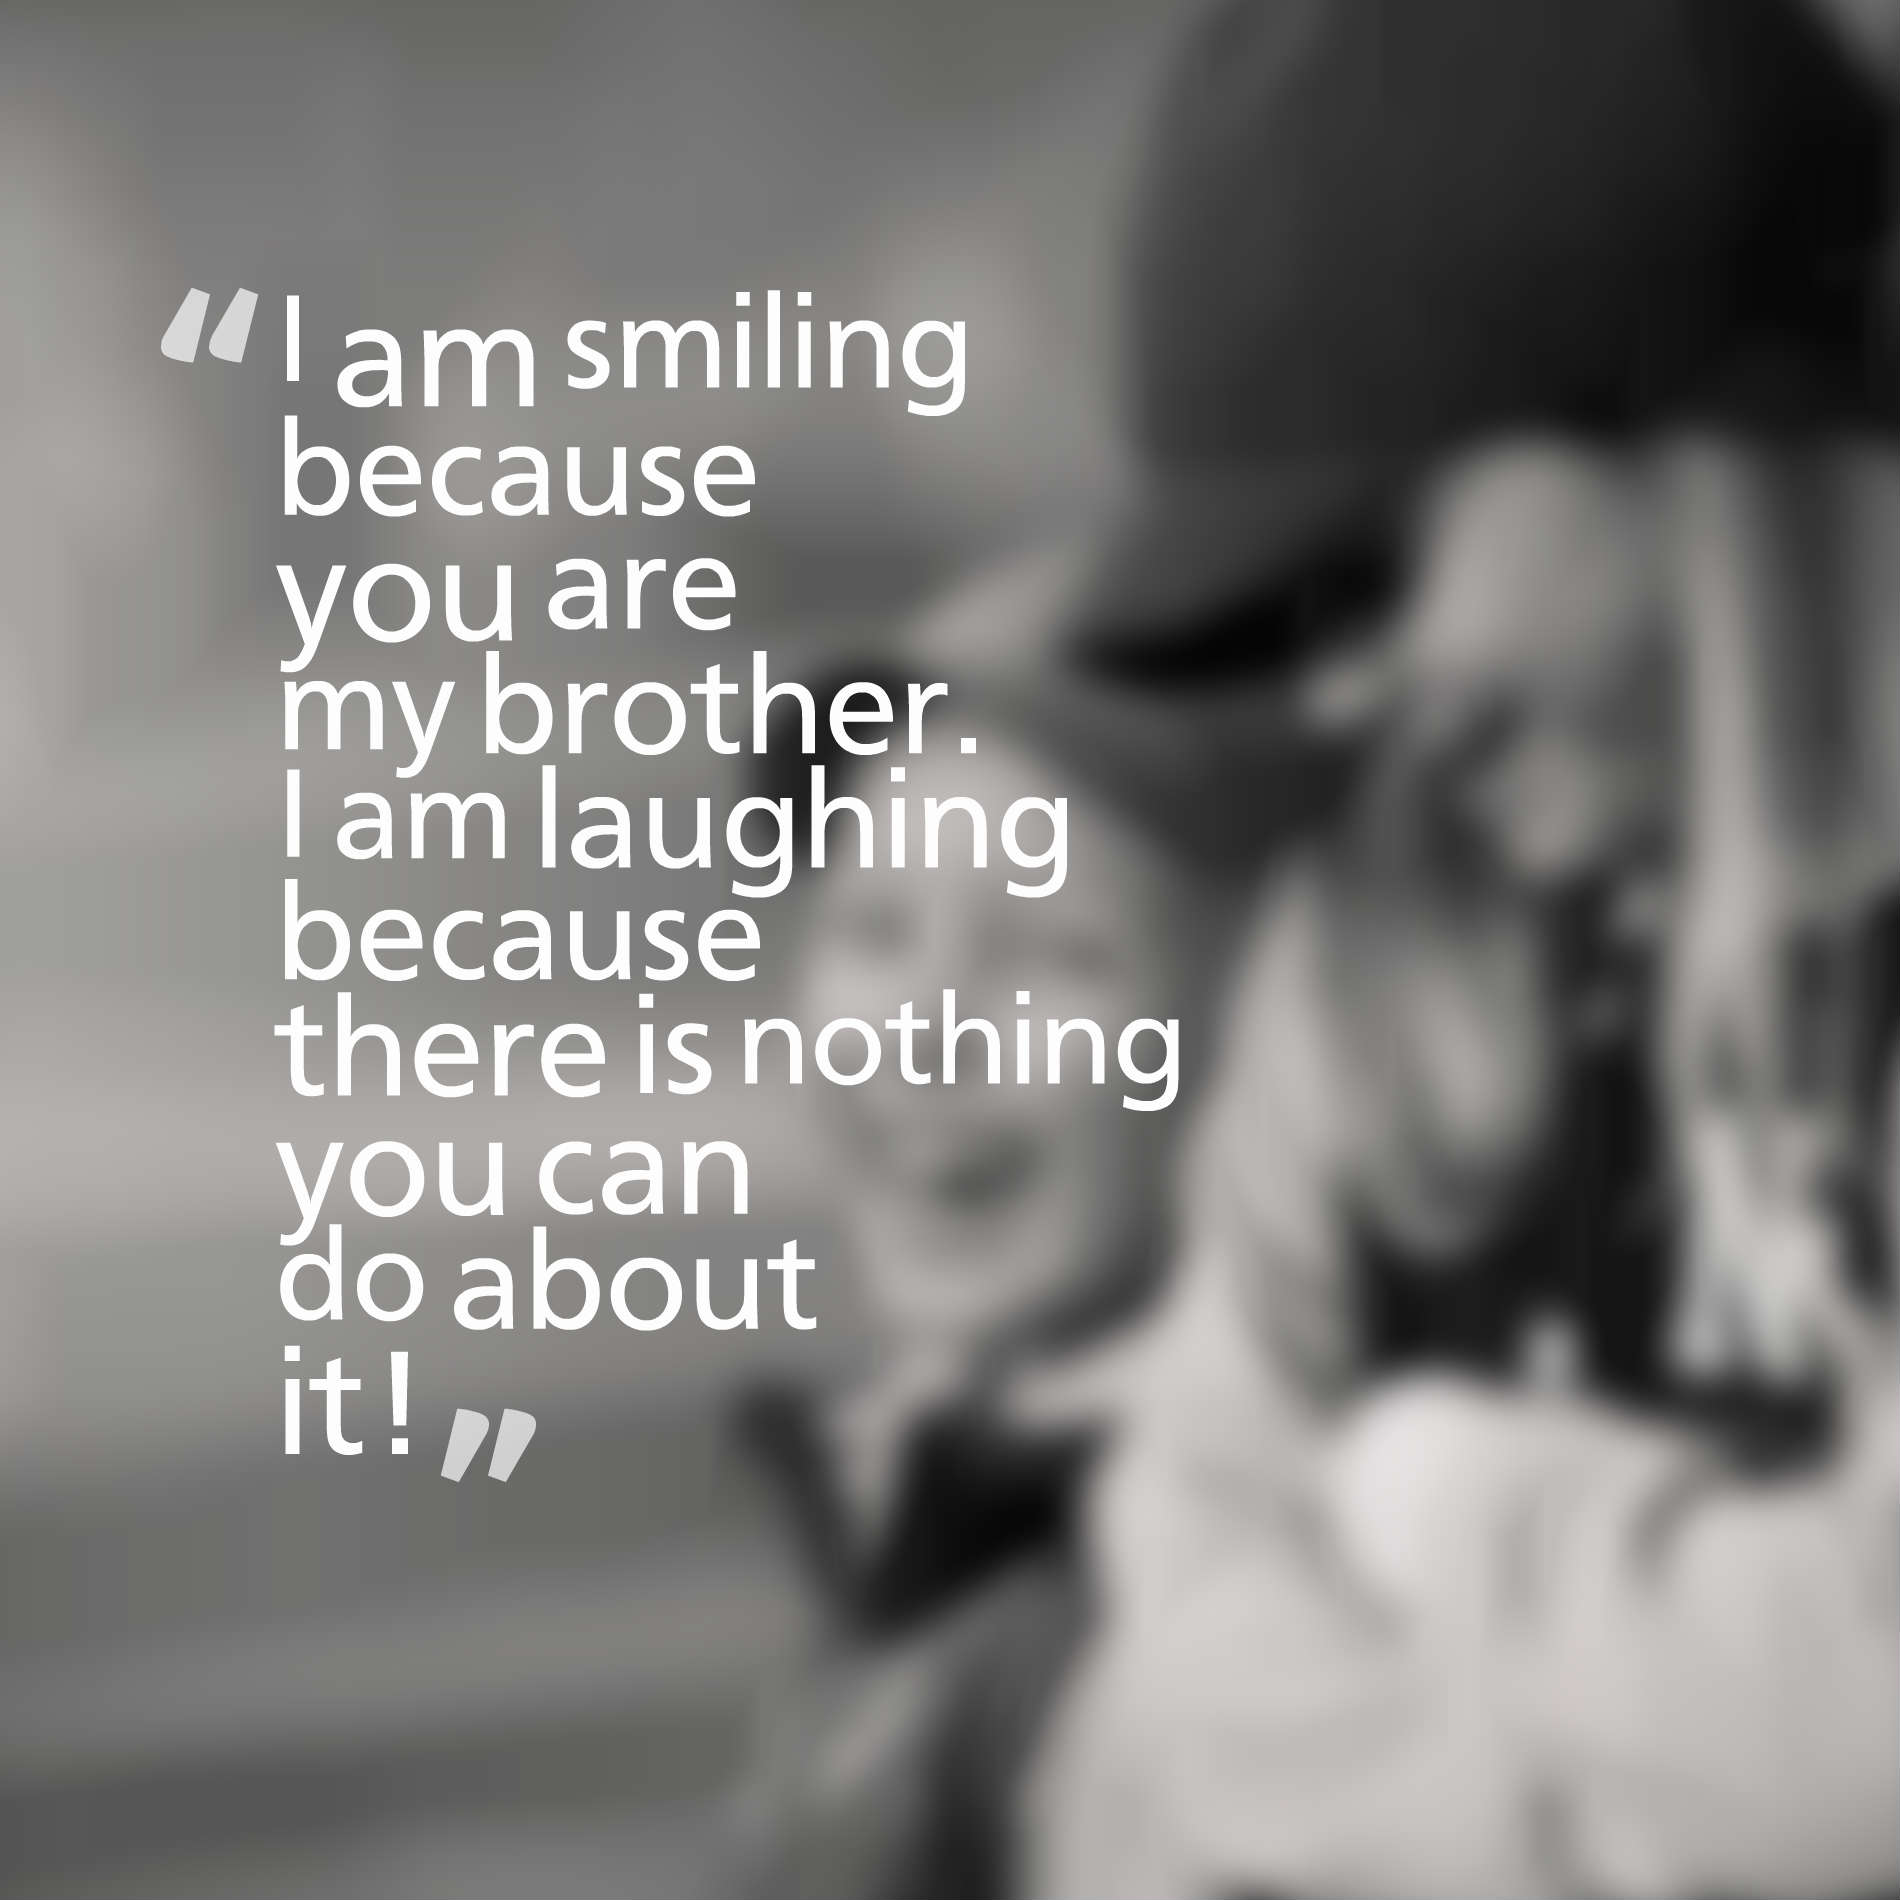 My About I Because I Theres Do You Your Can Love Sister You Because Laugh Nothing It